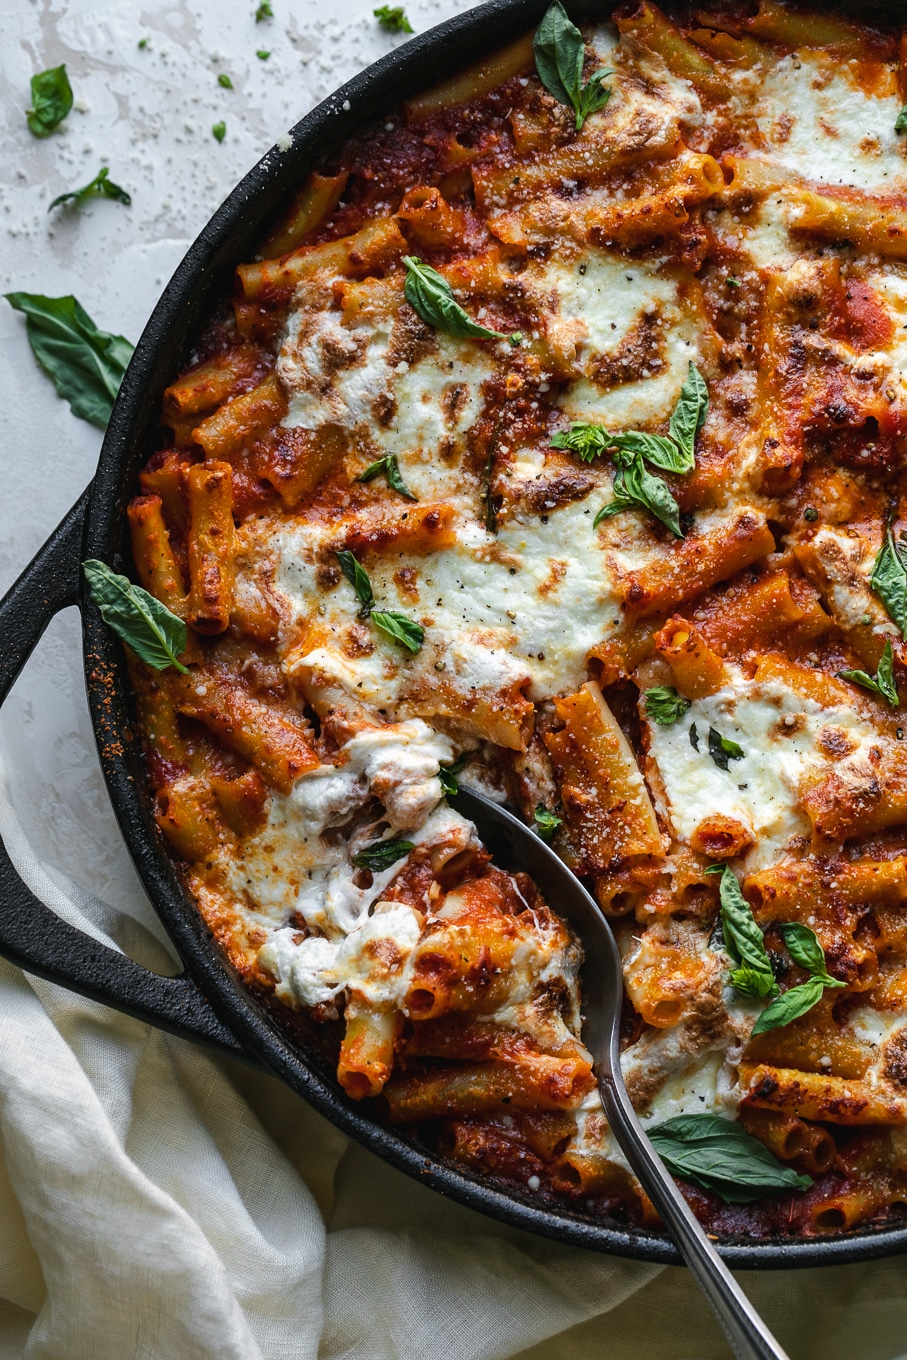 Overhead shot of a skillet of baked ziti with a spoon digging in